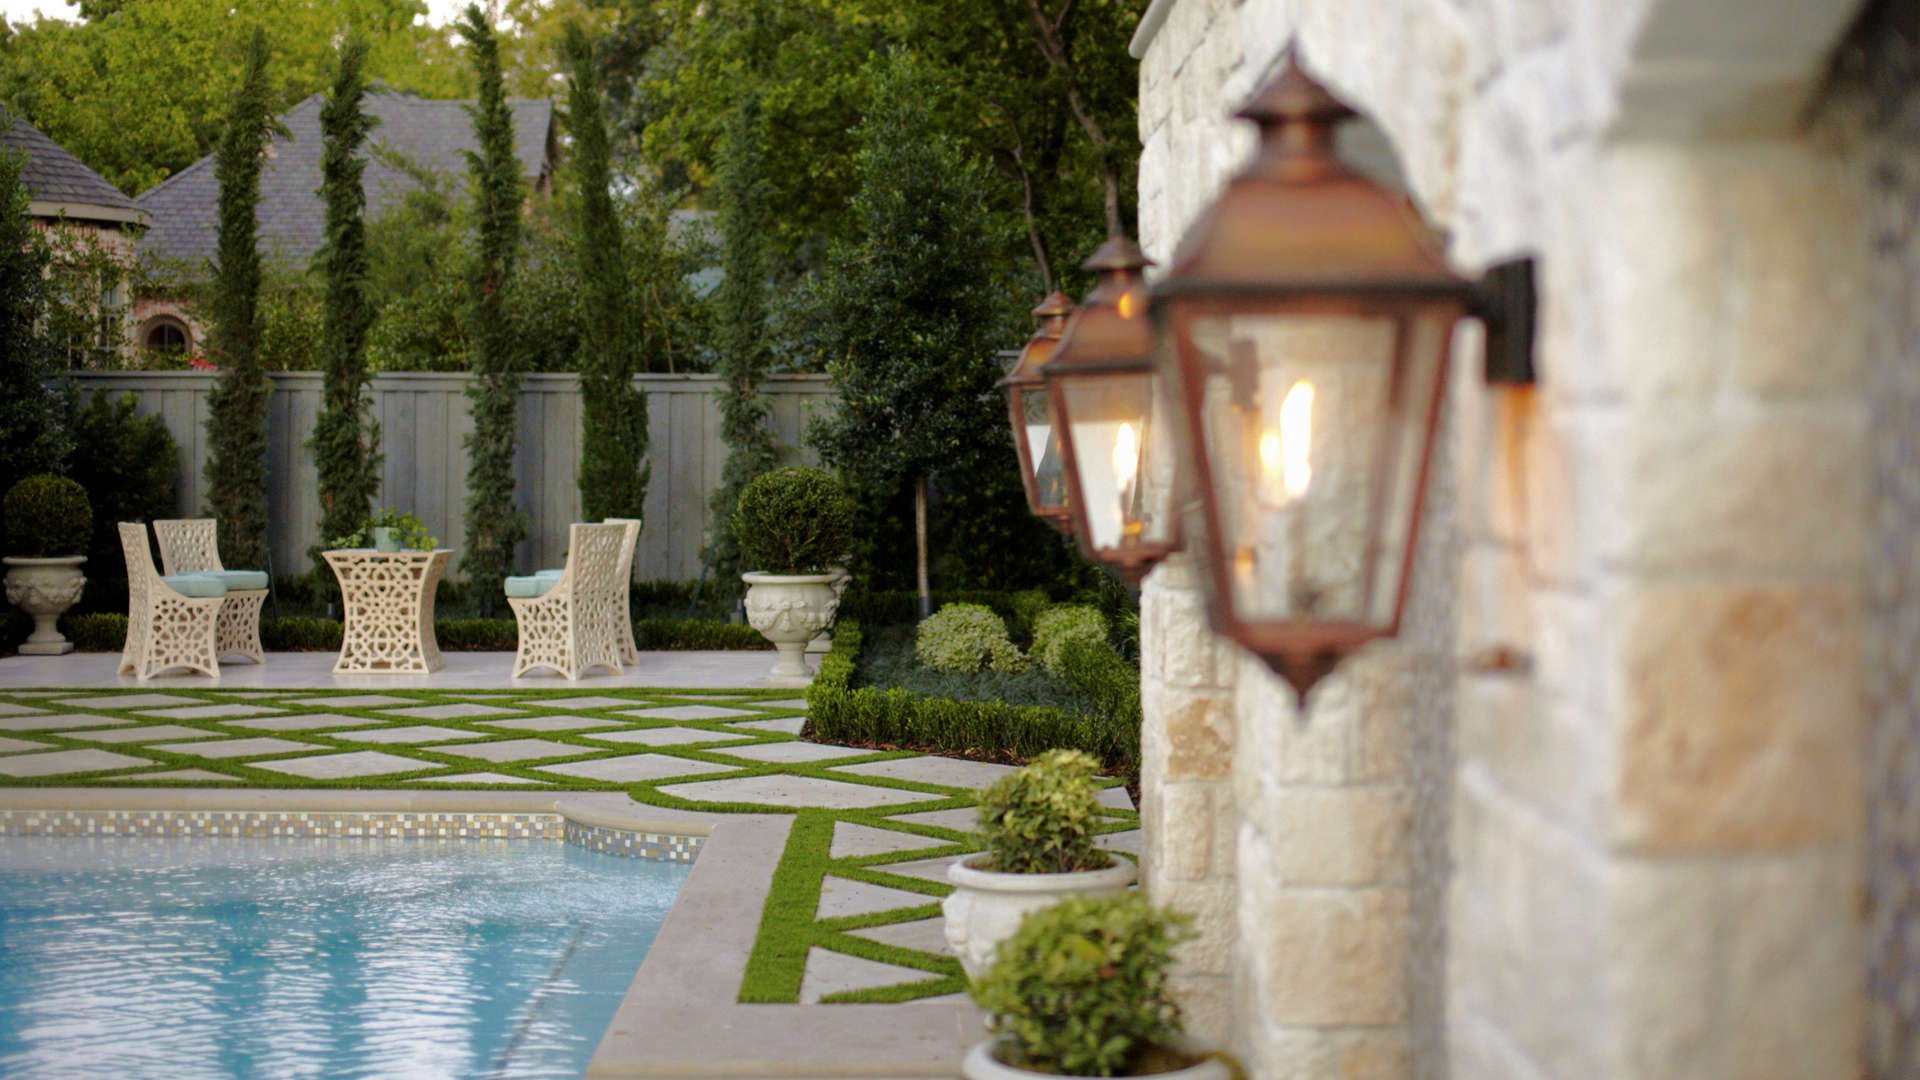 Garden Design Dallas garden design with small backyard landscape patio designs adorable ideas of landscaping from maeshouse Dallas Landscape Design Firm Matthew Murrey Design